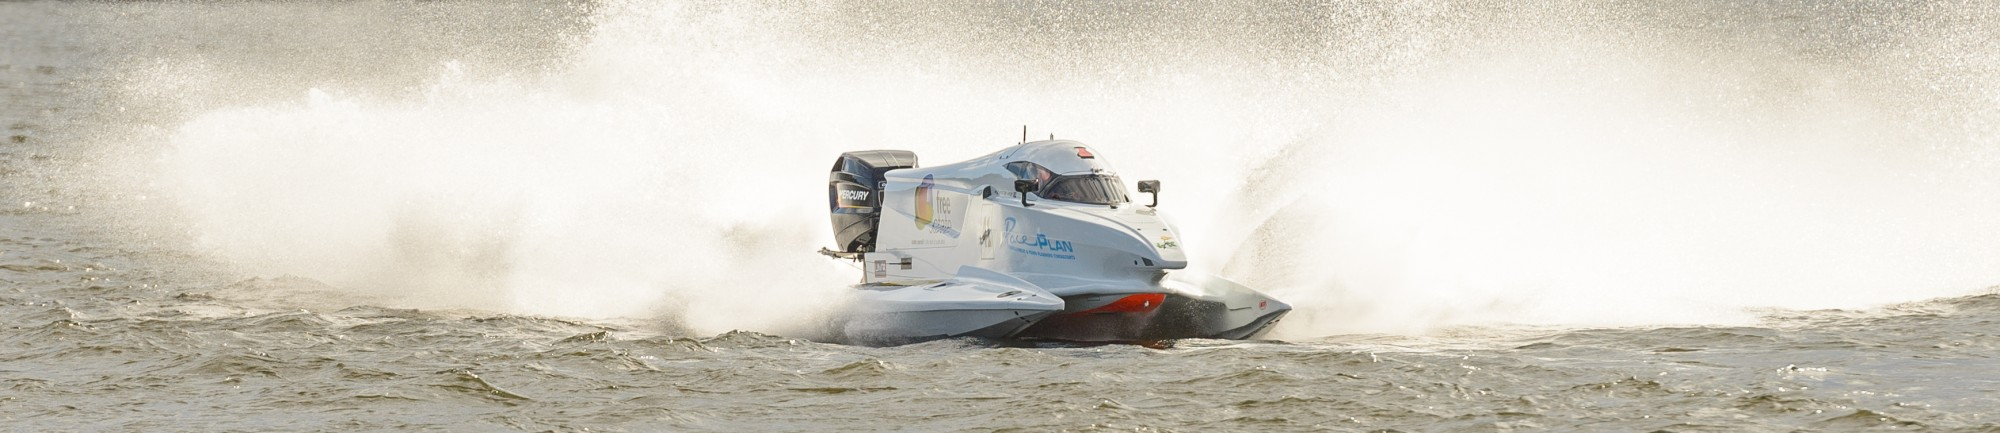 UIM F2 World Powerboat Championship in Stockholm June 2013 02